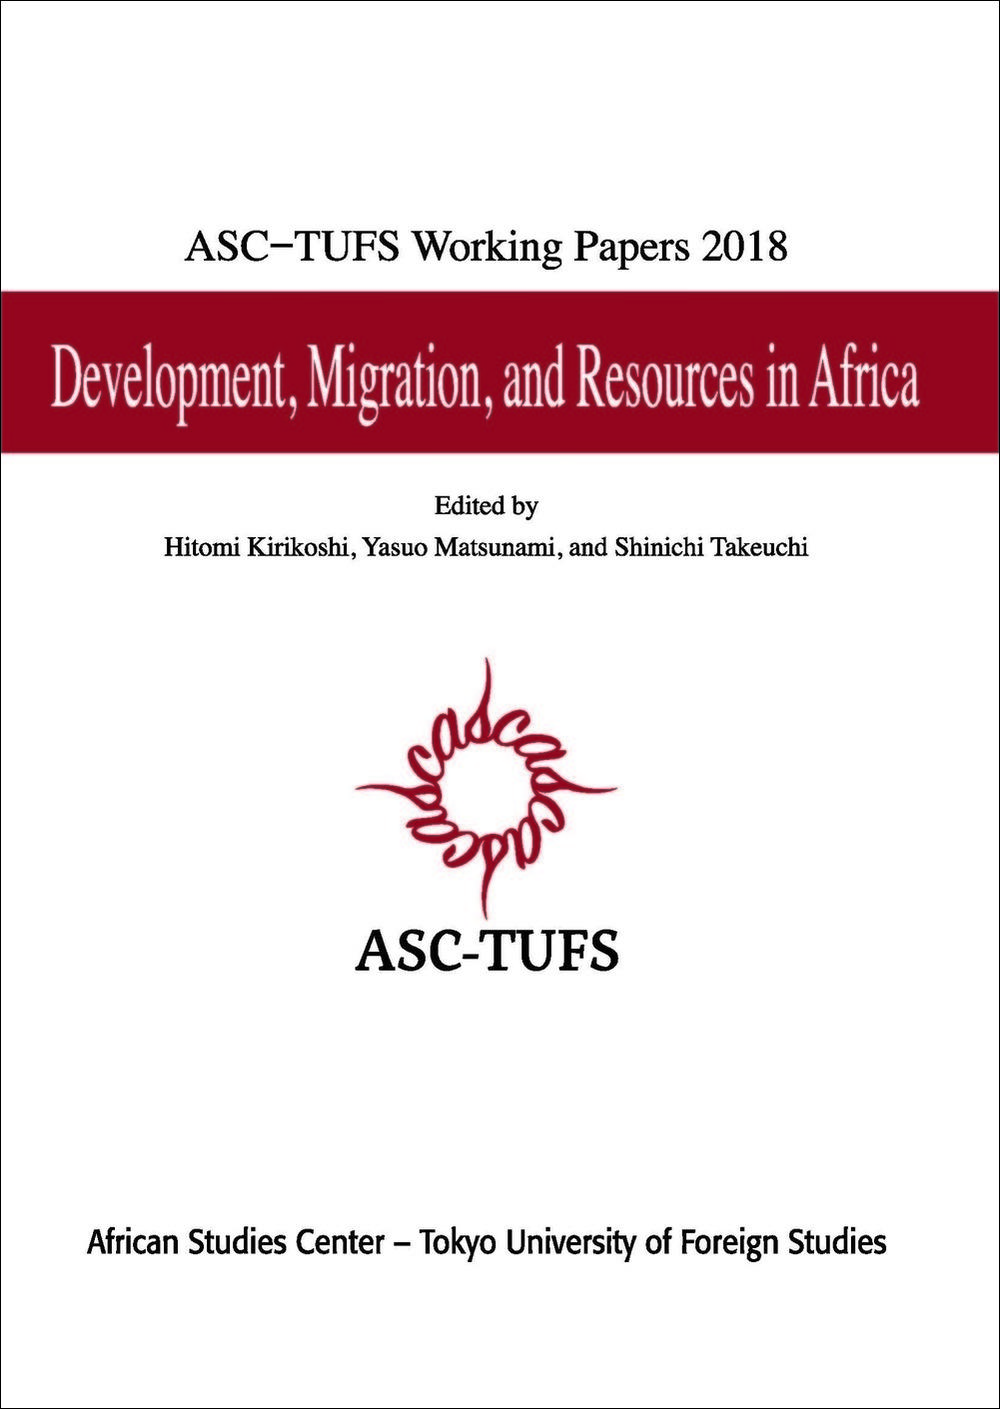 『ASC-TUFS Working Papers 2018